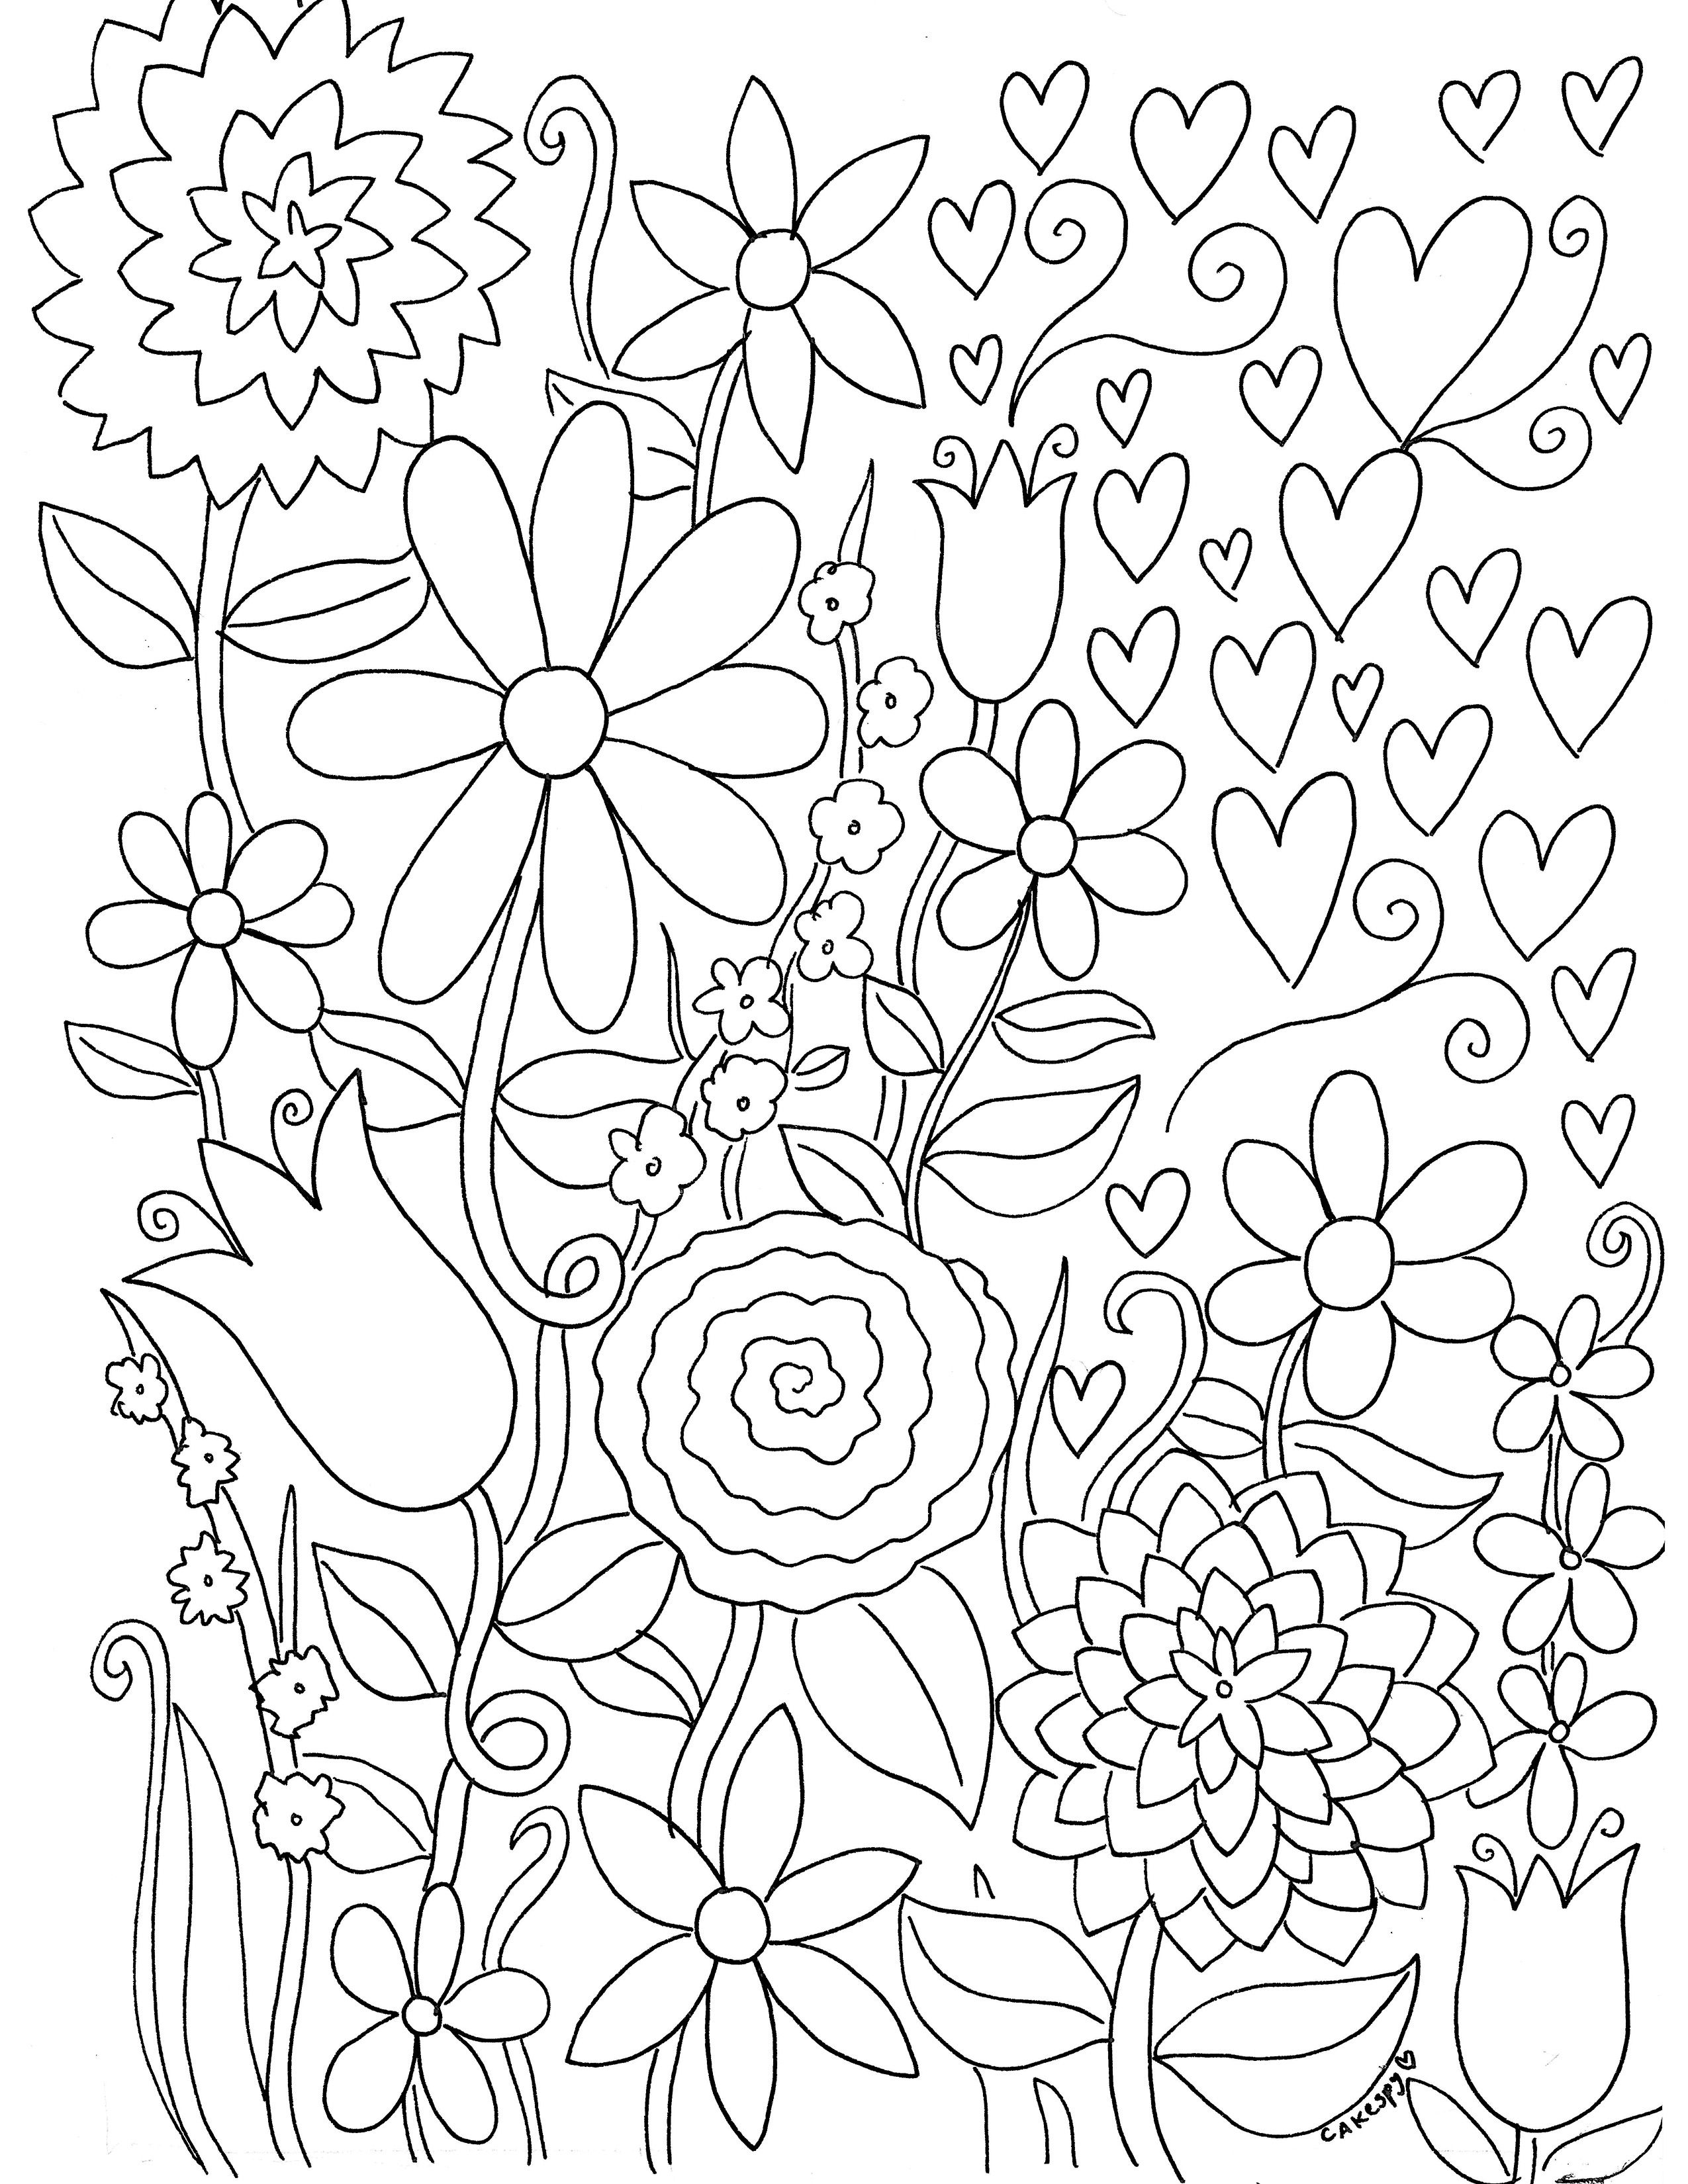 Coloring books for adults assist your emotional health so